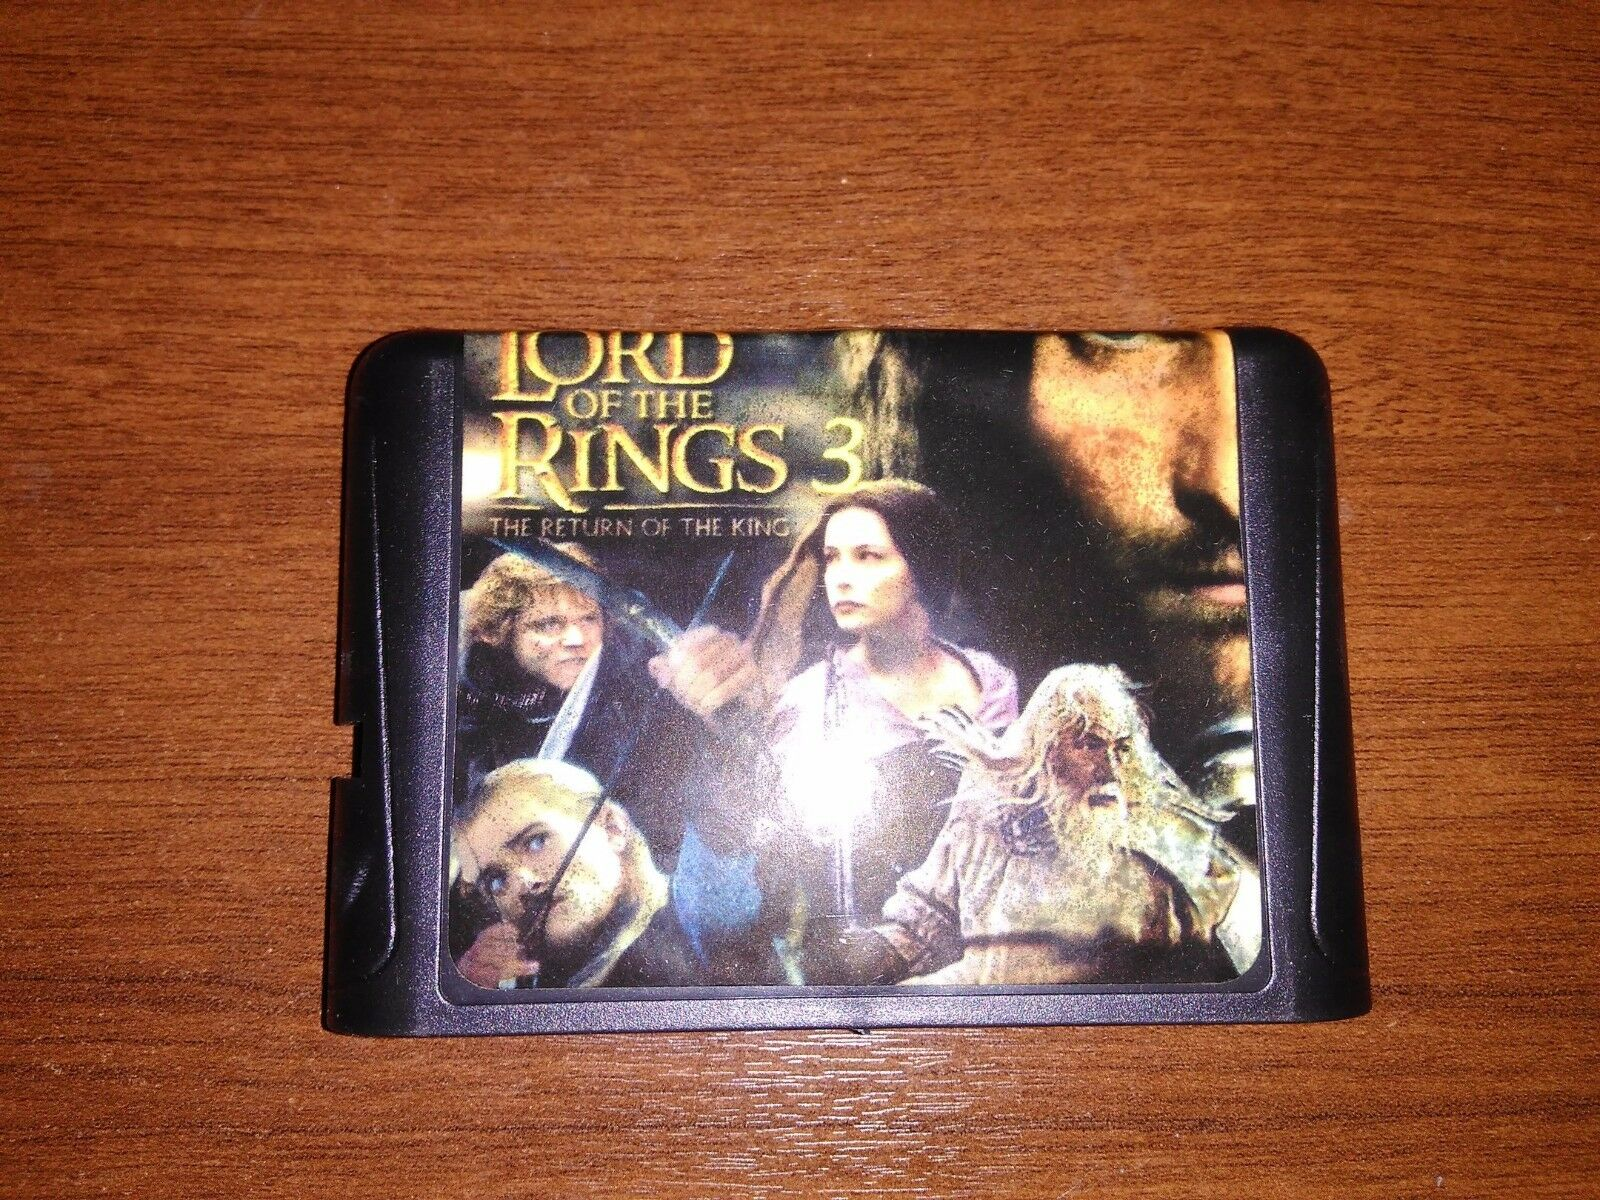 The Lord of the Rings 3: Return of the King